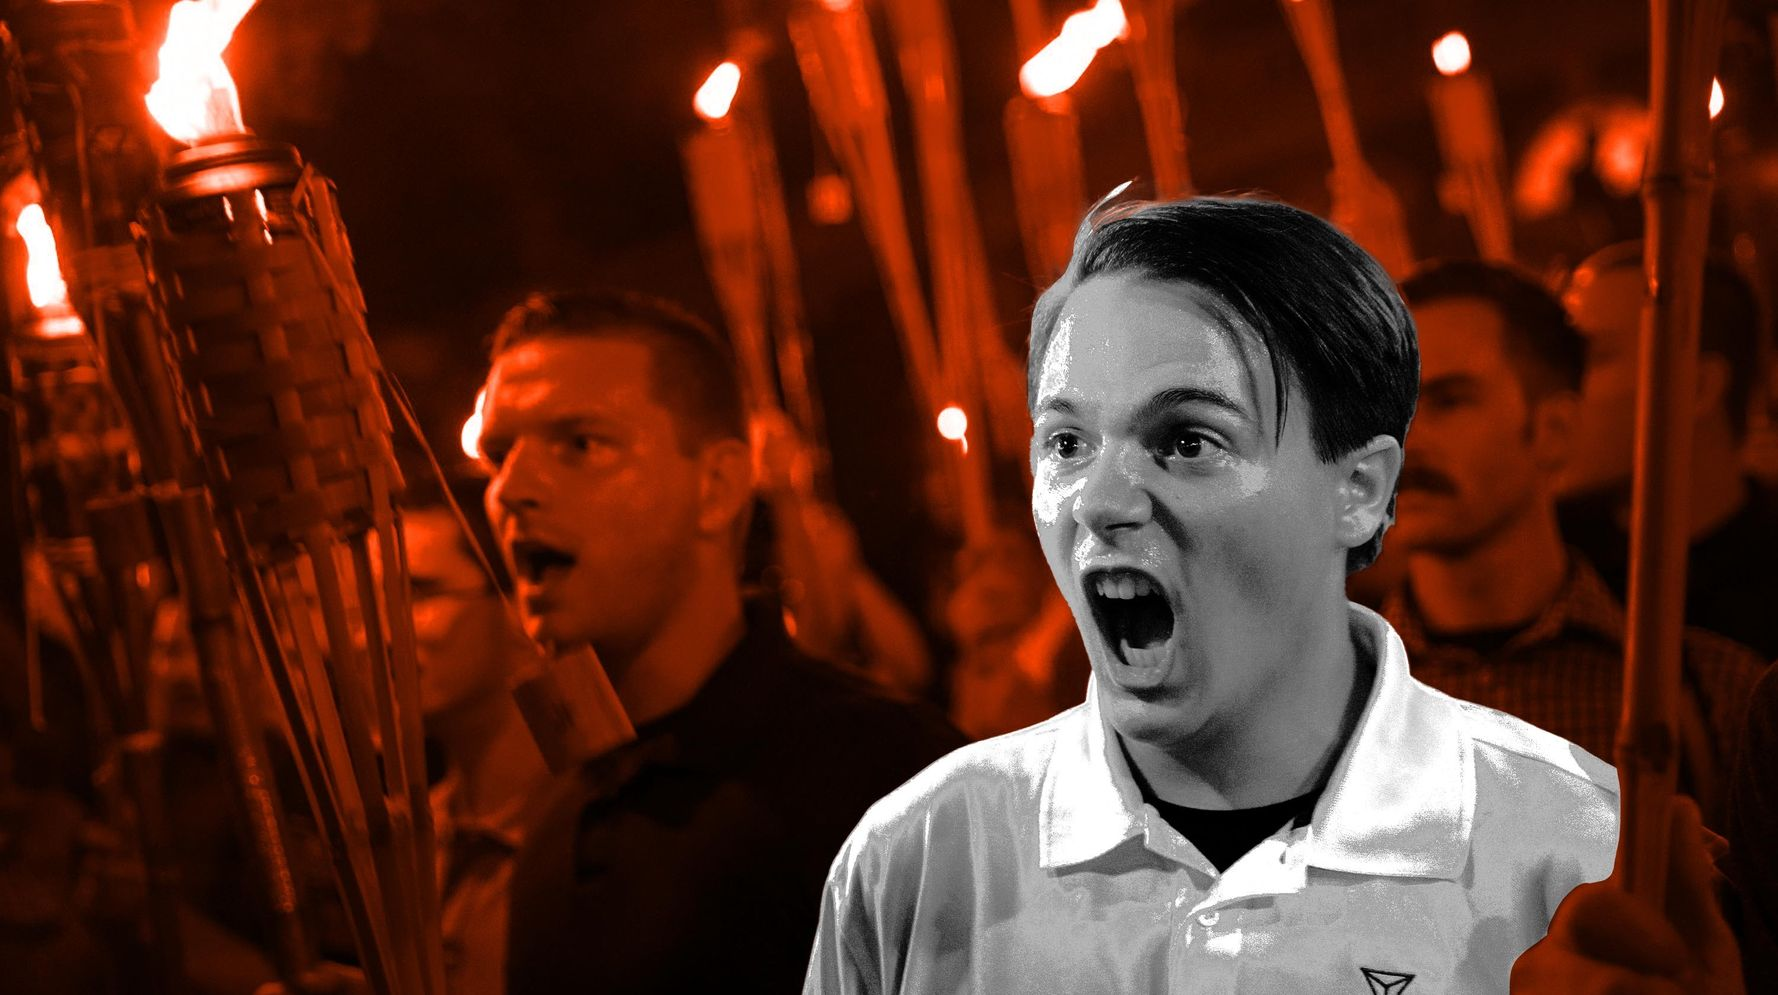 The Fascist Face Of Charlottesville Joined The Military. Then He Got Kicked Out.